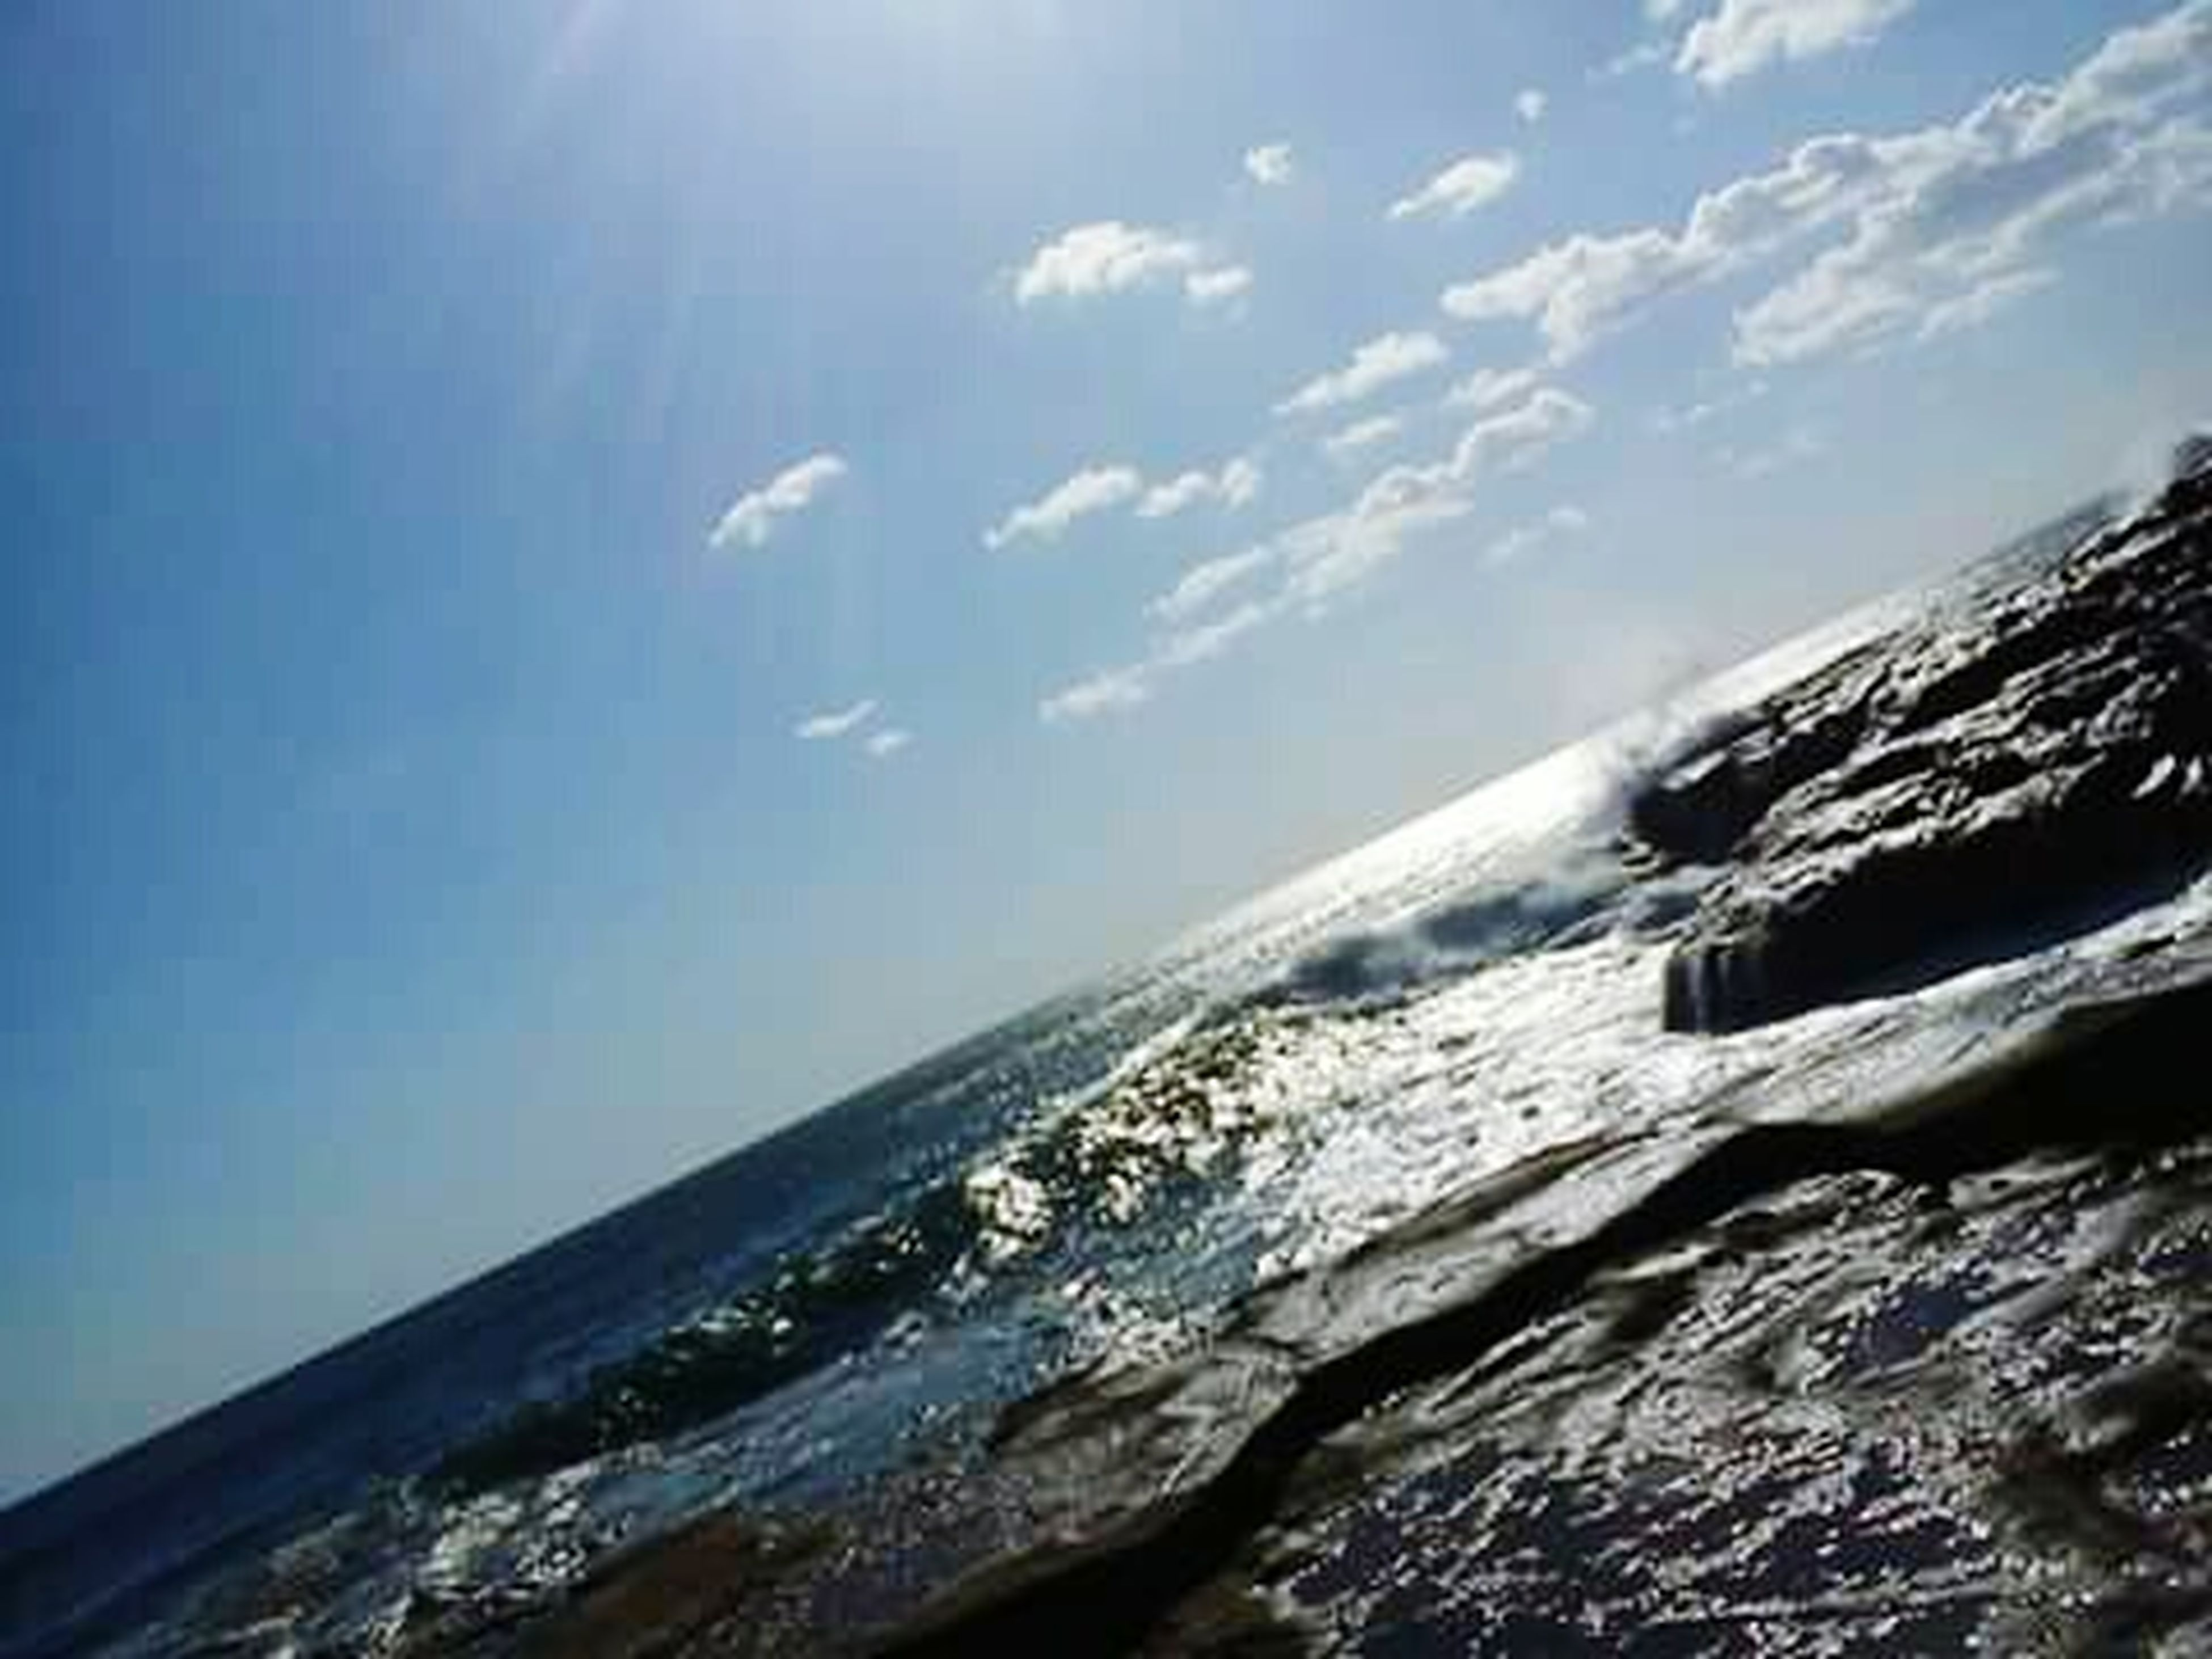 sea, scenics, beauty in nature, water, horizon over water, tranquil scene, sky, tranquility, nature, blue, mountain, idyllic, sunlight, day, outdoors, cloud - sky, beach, rock - object, no people, remote